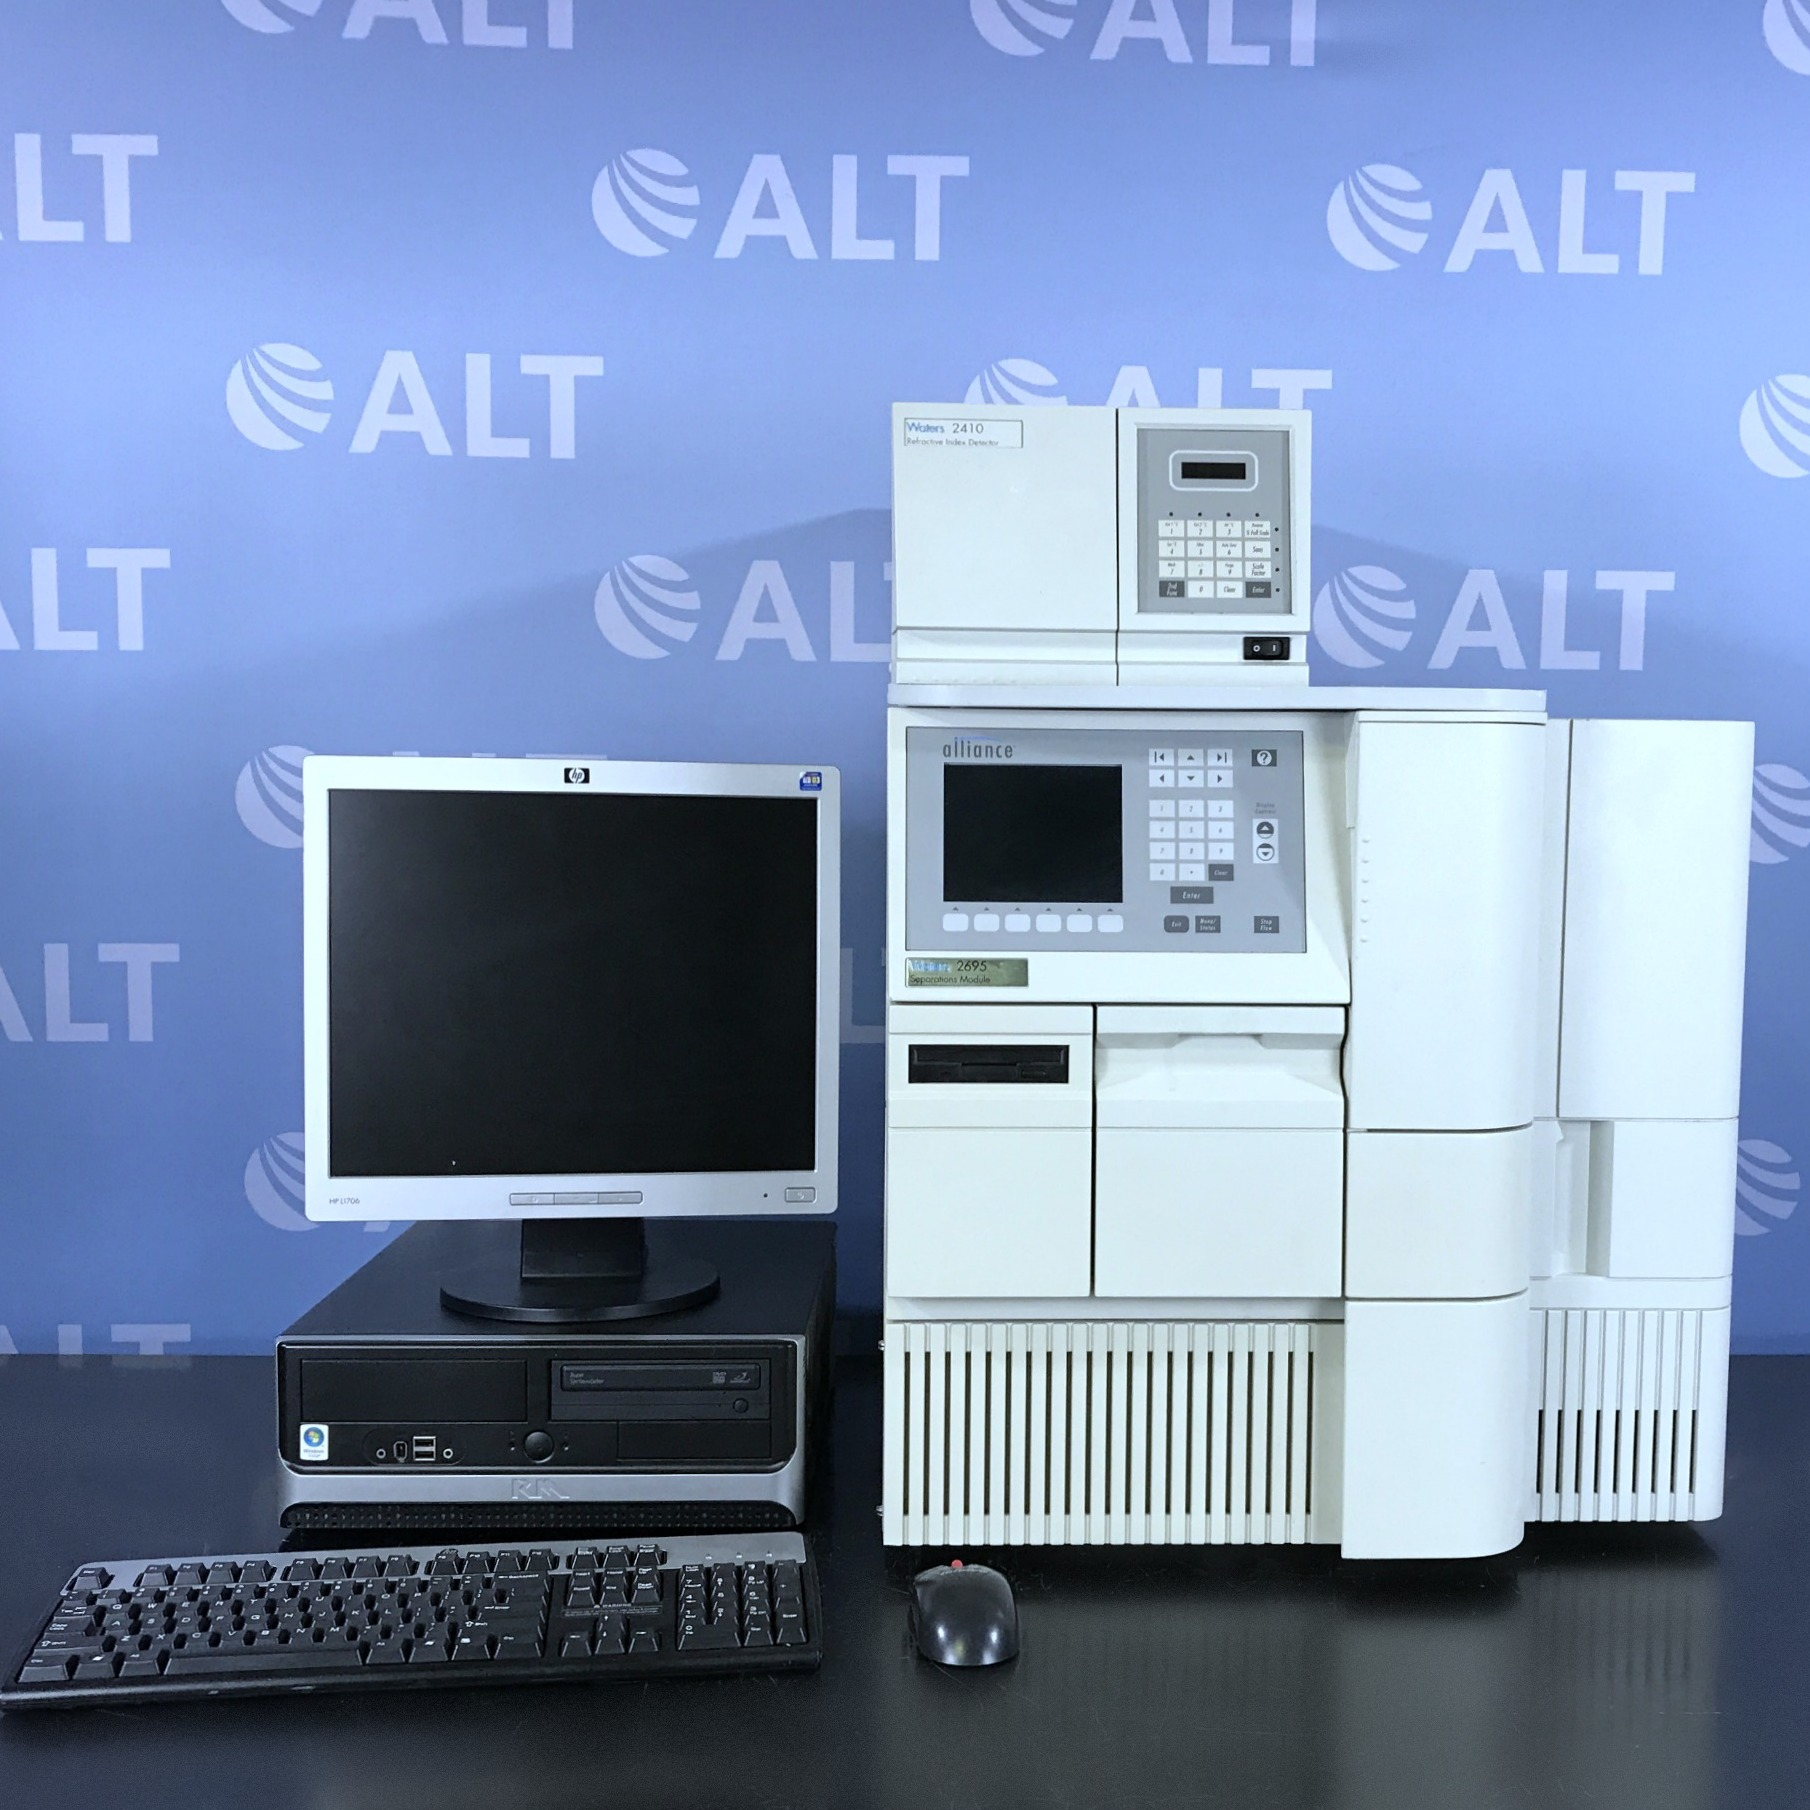 Alliance 2695 HPLC with 2410 Refractive Index Detector Name